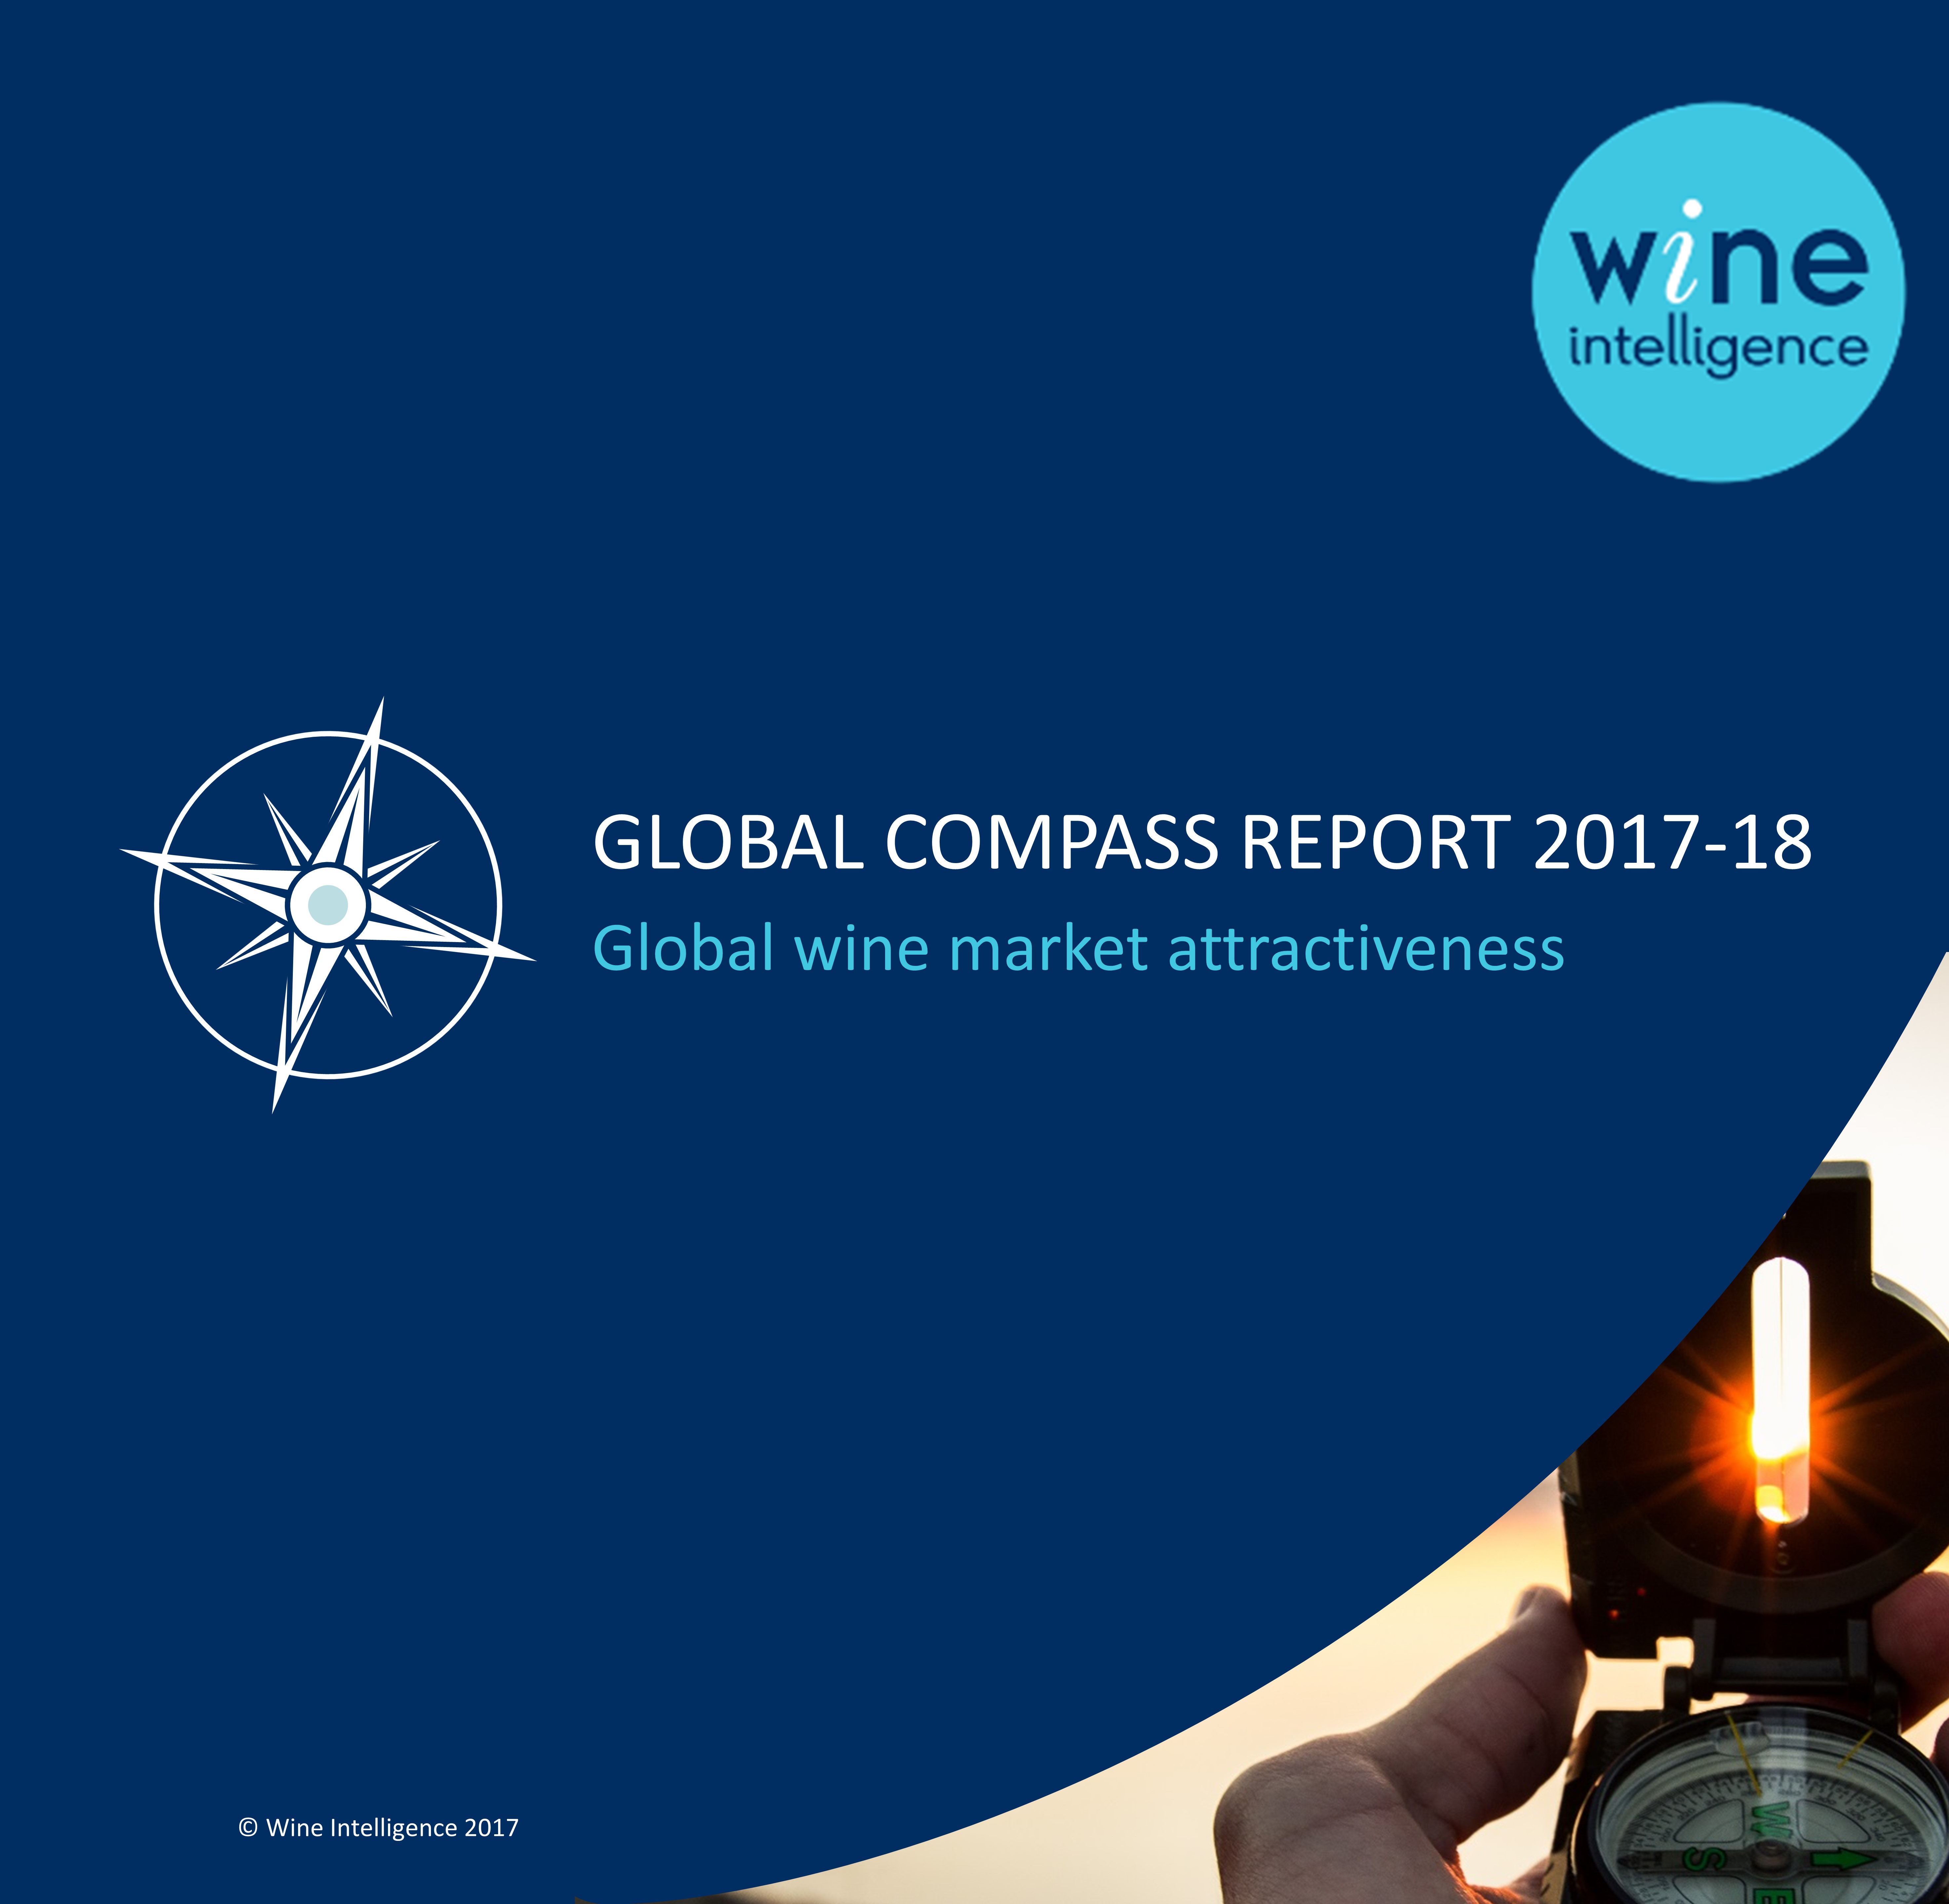 Global Compass 2017 2018 1 - Press Release: Poland, Taiwan and the United Arab Emirates wine markets upgraded from Emerging to Growth, according to a new Wine Intelligence report